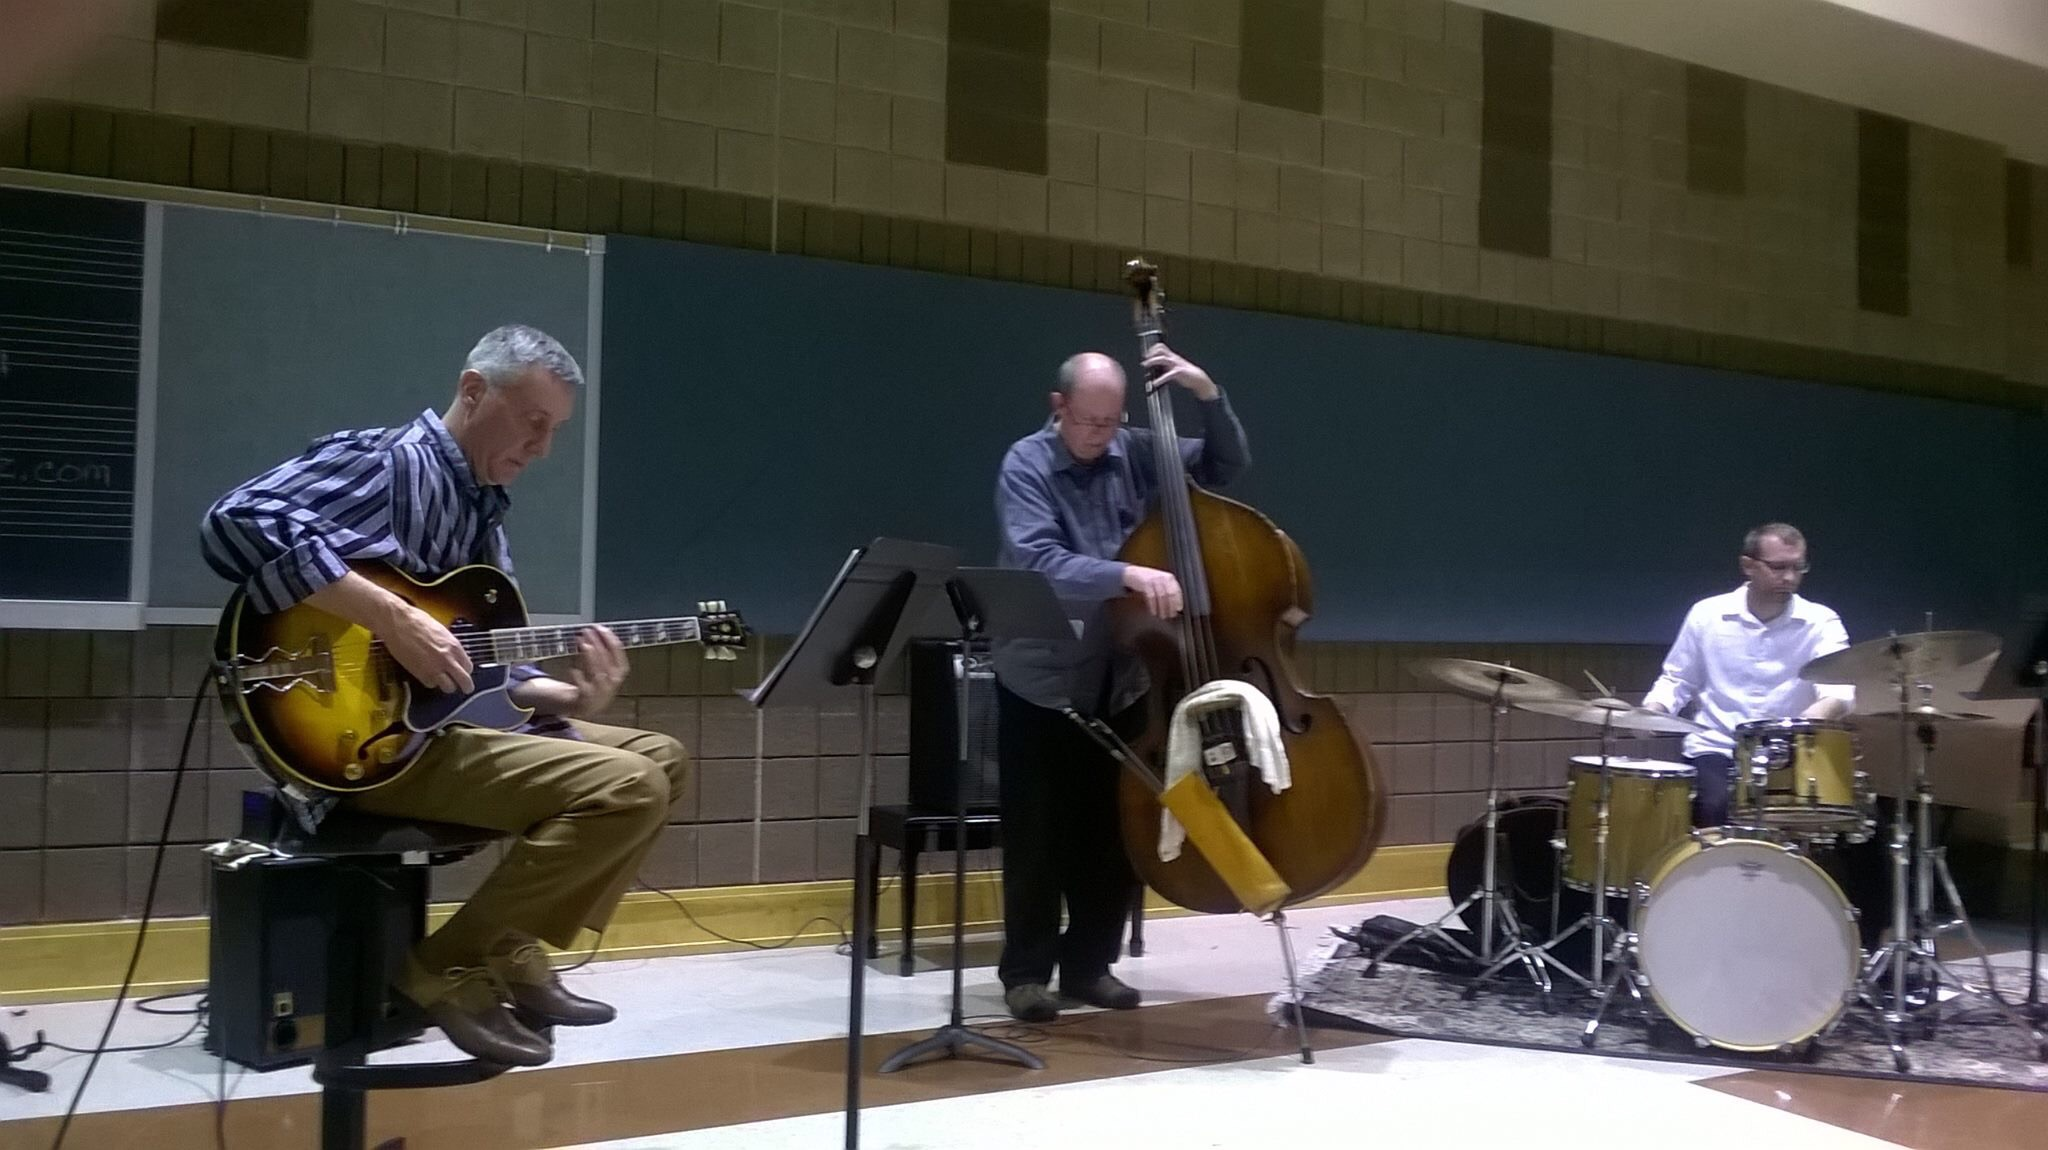 Steve Jacobson, Phil Brown, Jimmy Beers @ SIU Guitar Festival, 2015